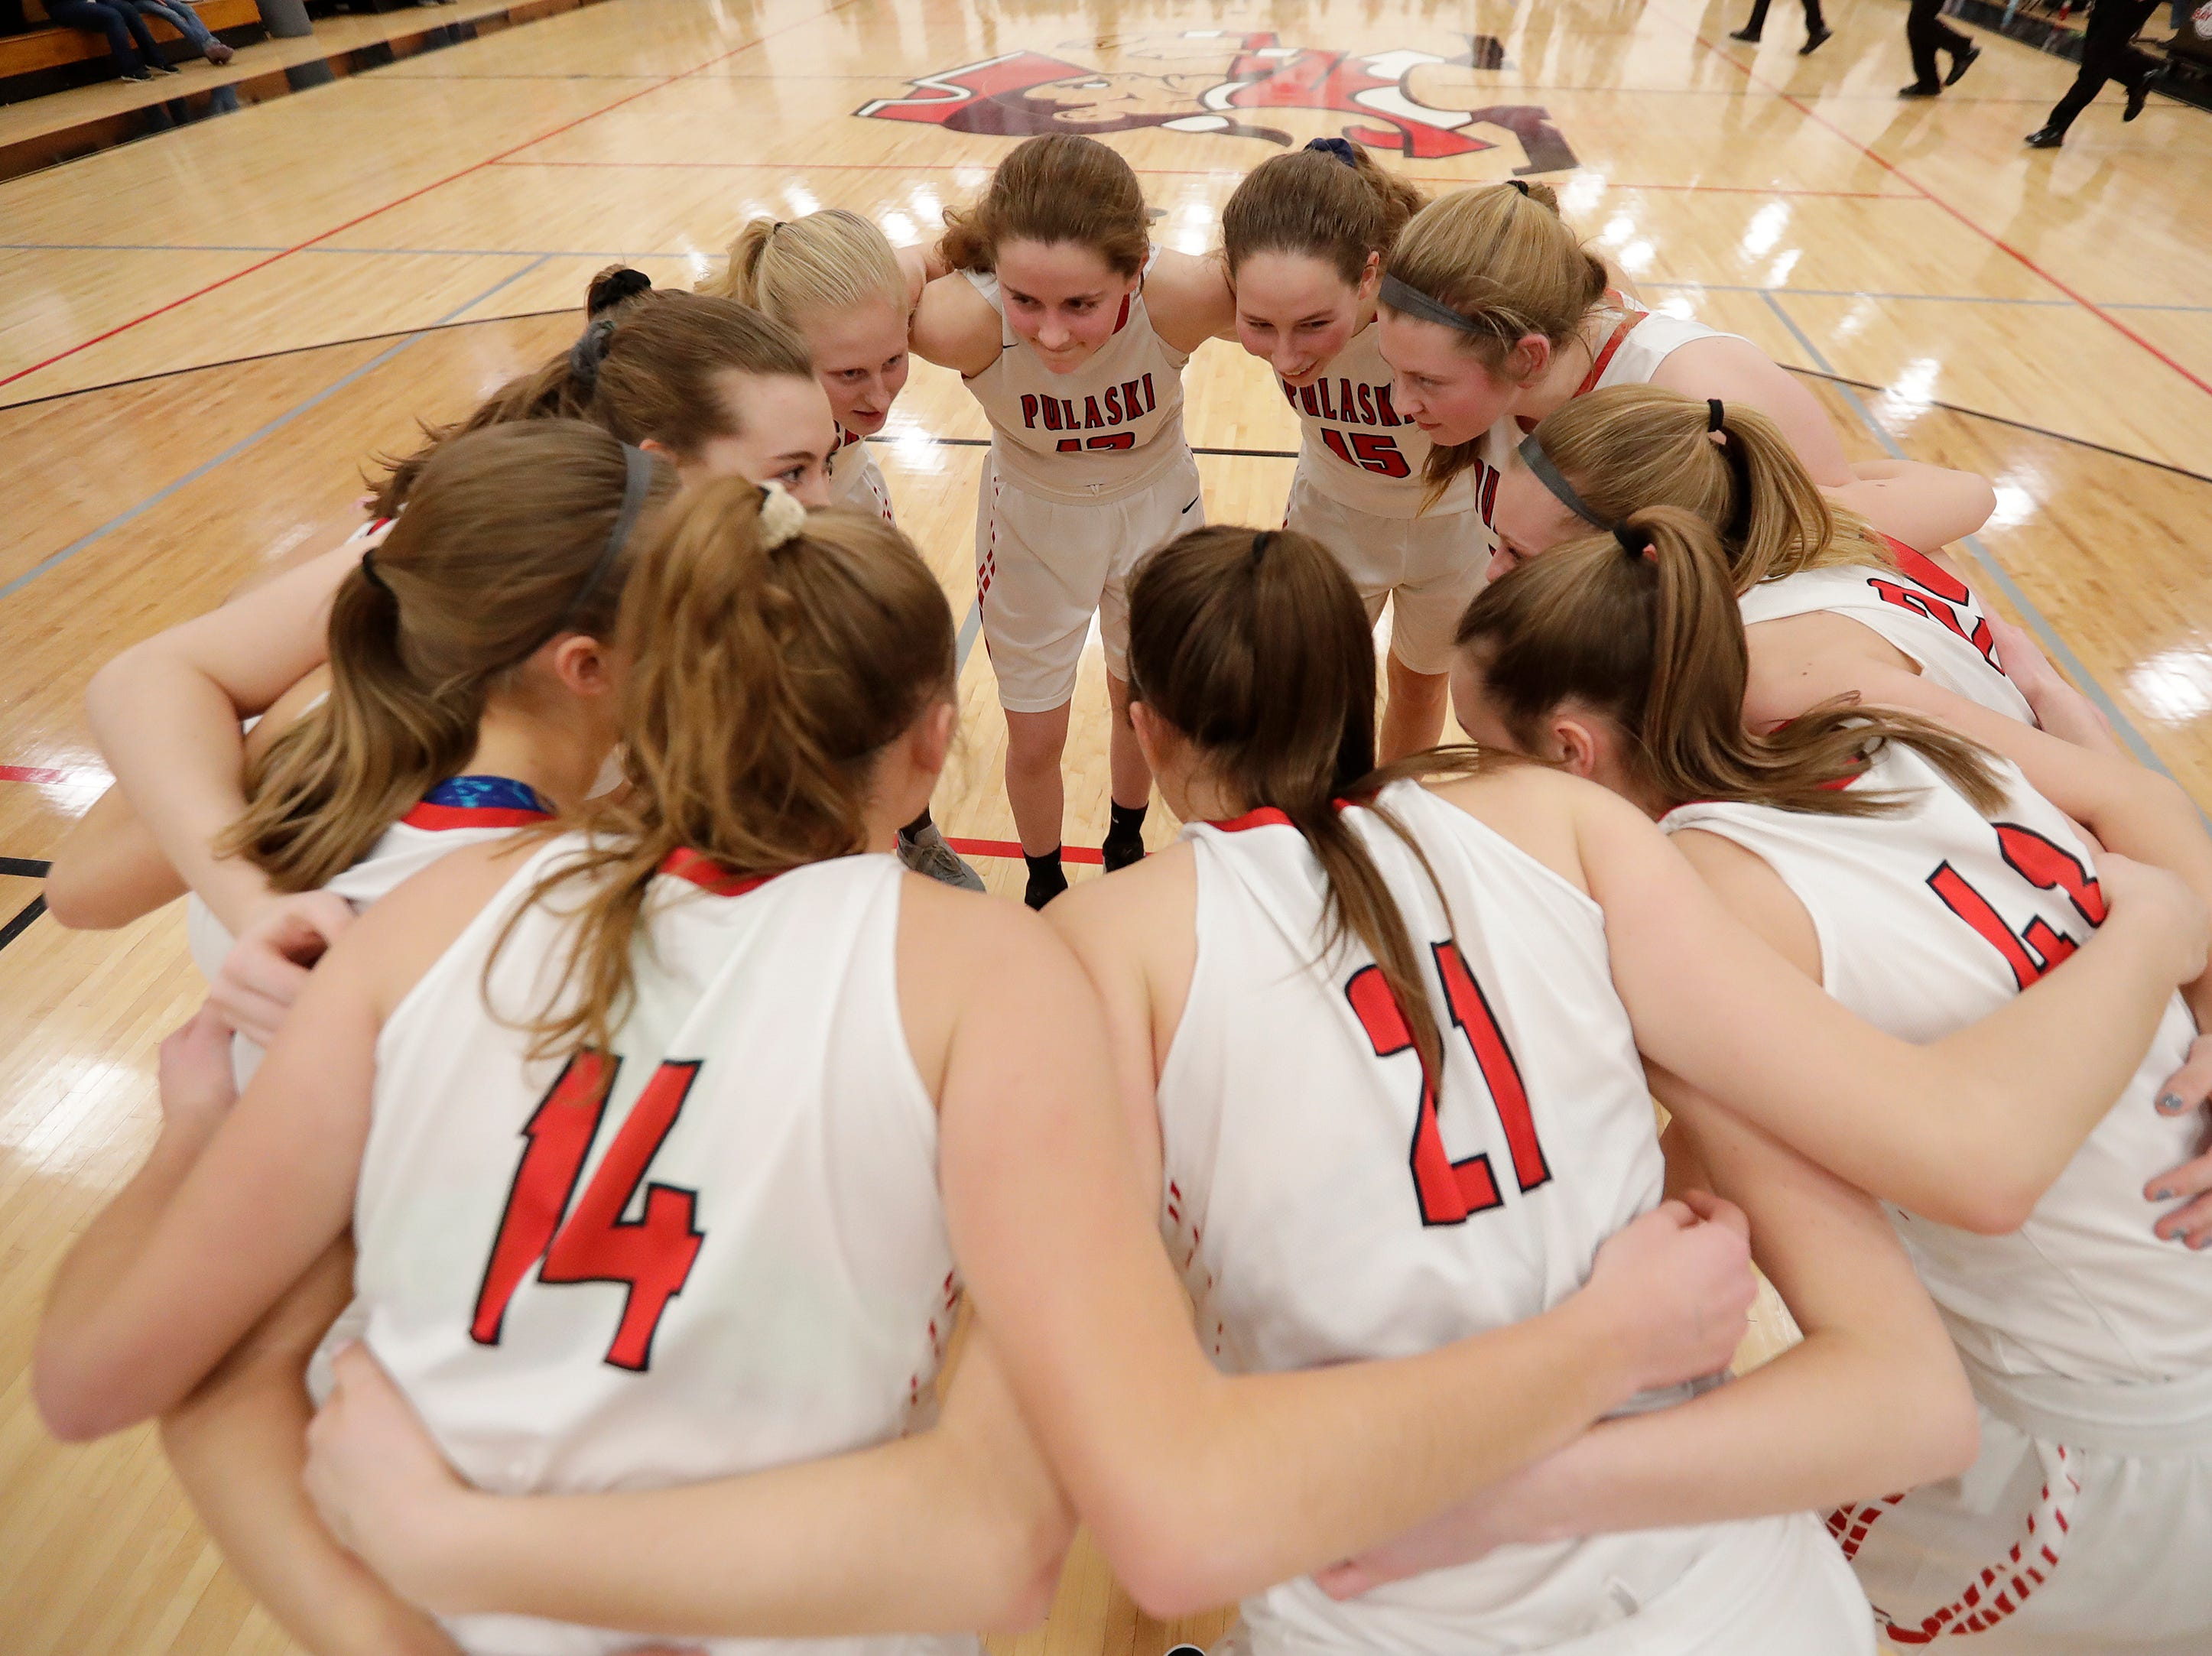 Pulaski players huddle before a girls basketball game at Pulaski high school on Friday, January 4, 2019 in Pulaski, Wis.